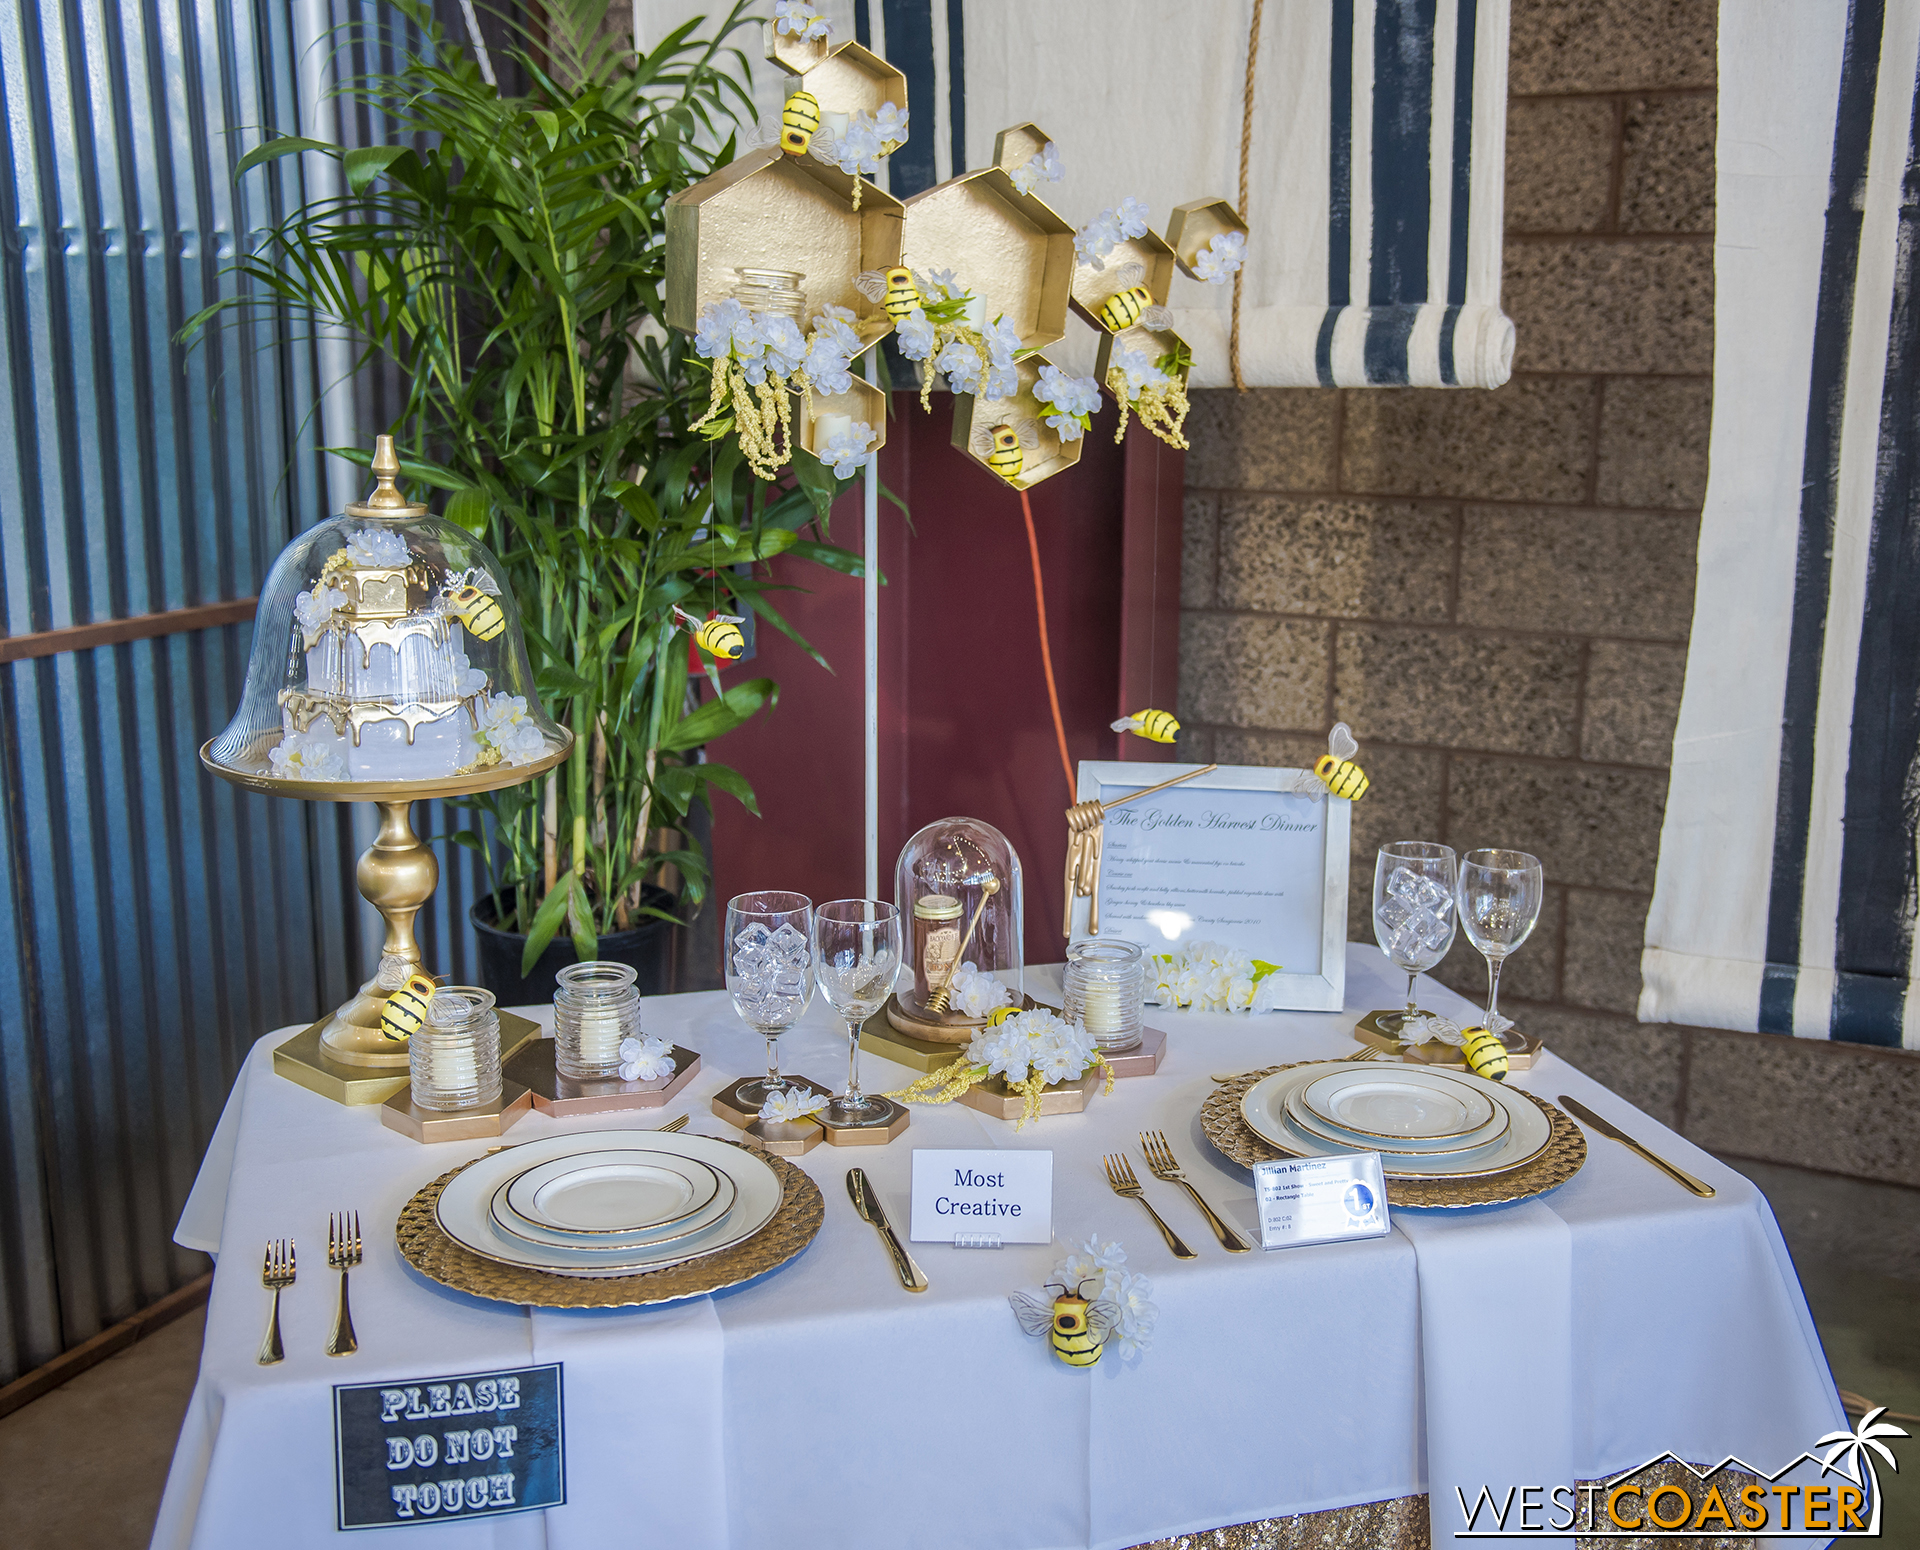 Every year, one of my favorite exhibits at the Fair is the table settings contest.  It can be found in the Culinary Arts hall.